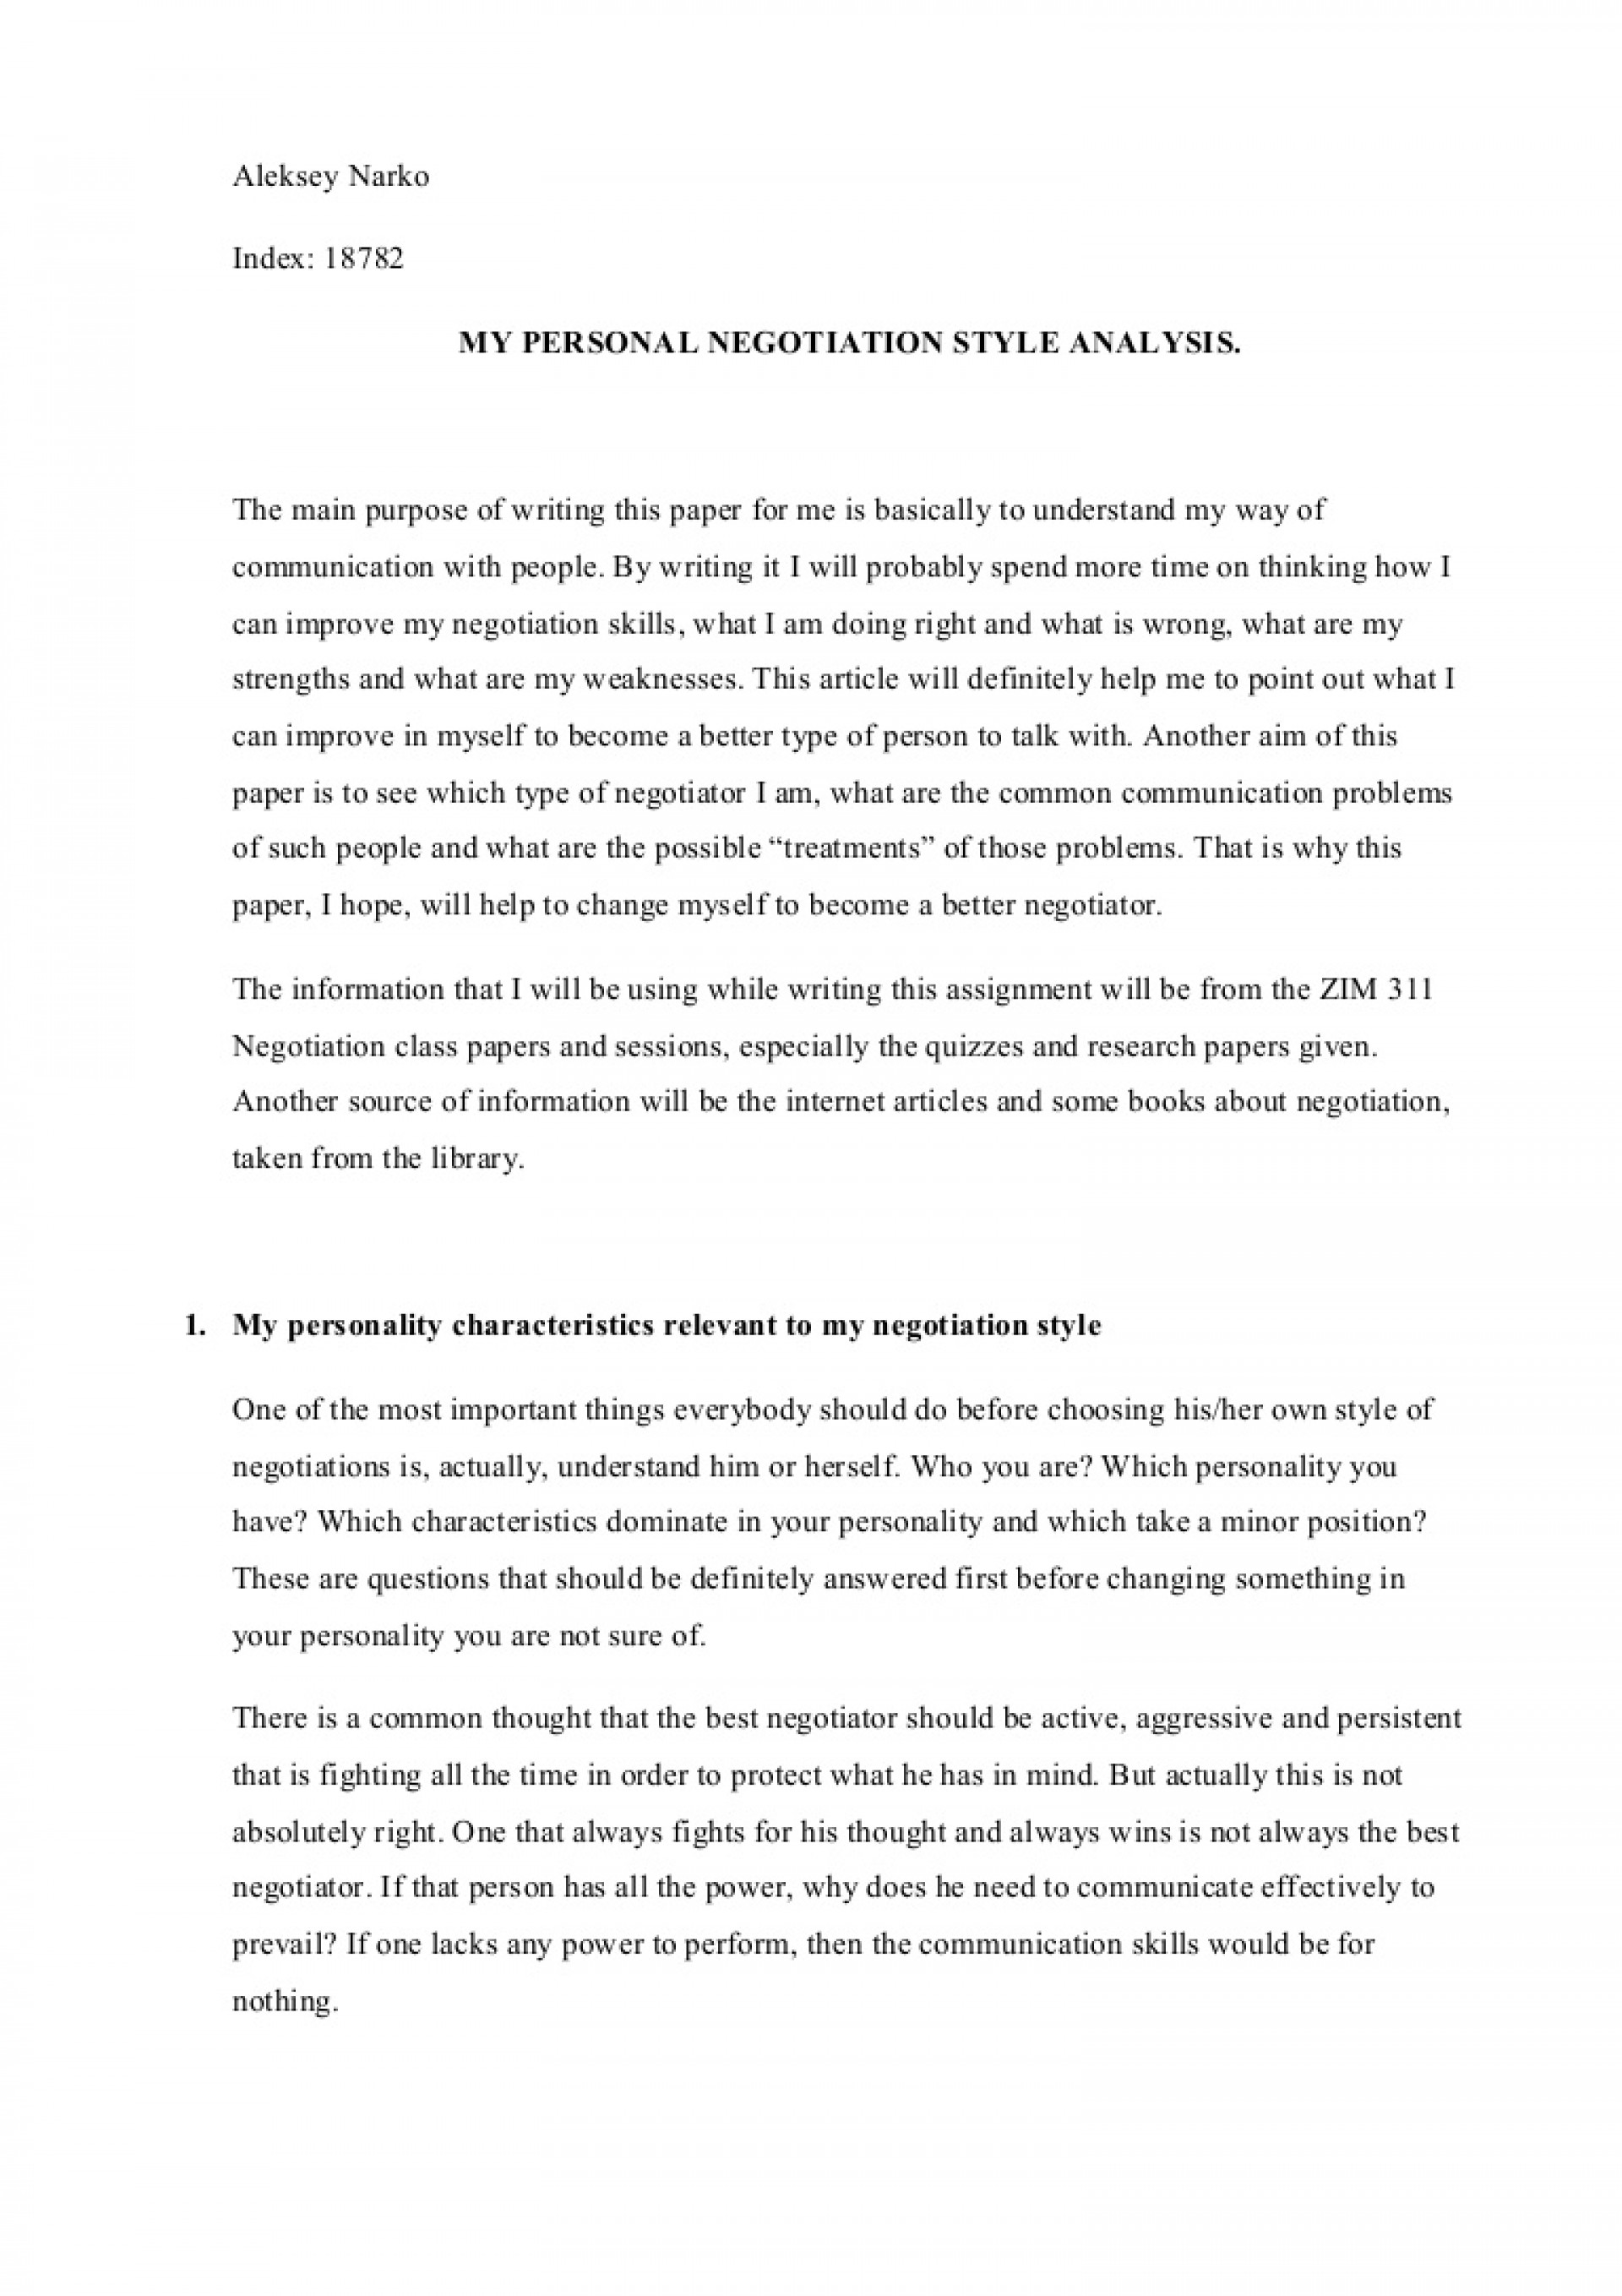 007 Personality Essay Example Negotiationsessay Phpapp01 Thumbnail Singular Borderline Disorder Titles Psychology Questions Topics 1920